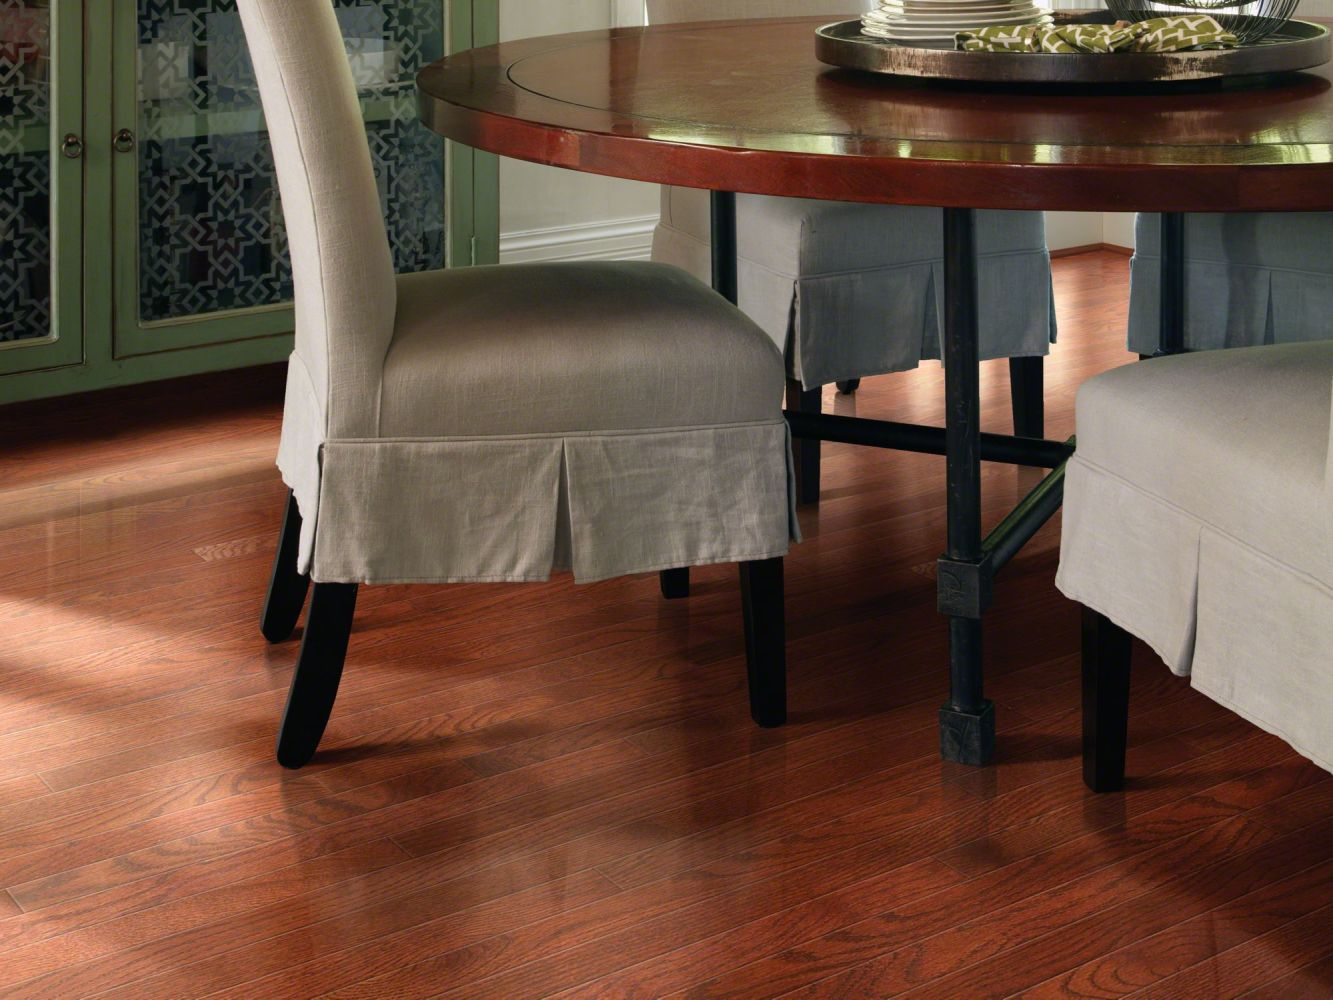 Shaw Floors Shaw Hardwoods Bellingham 70 Gloss 2.25 Cherry 00947_SW569